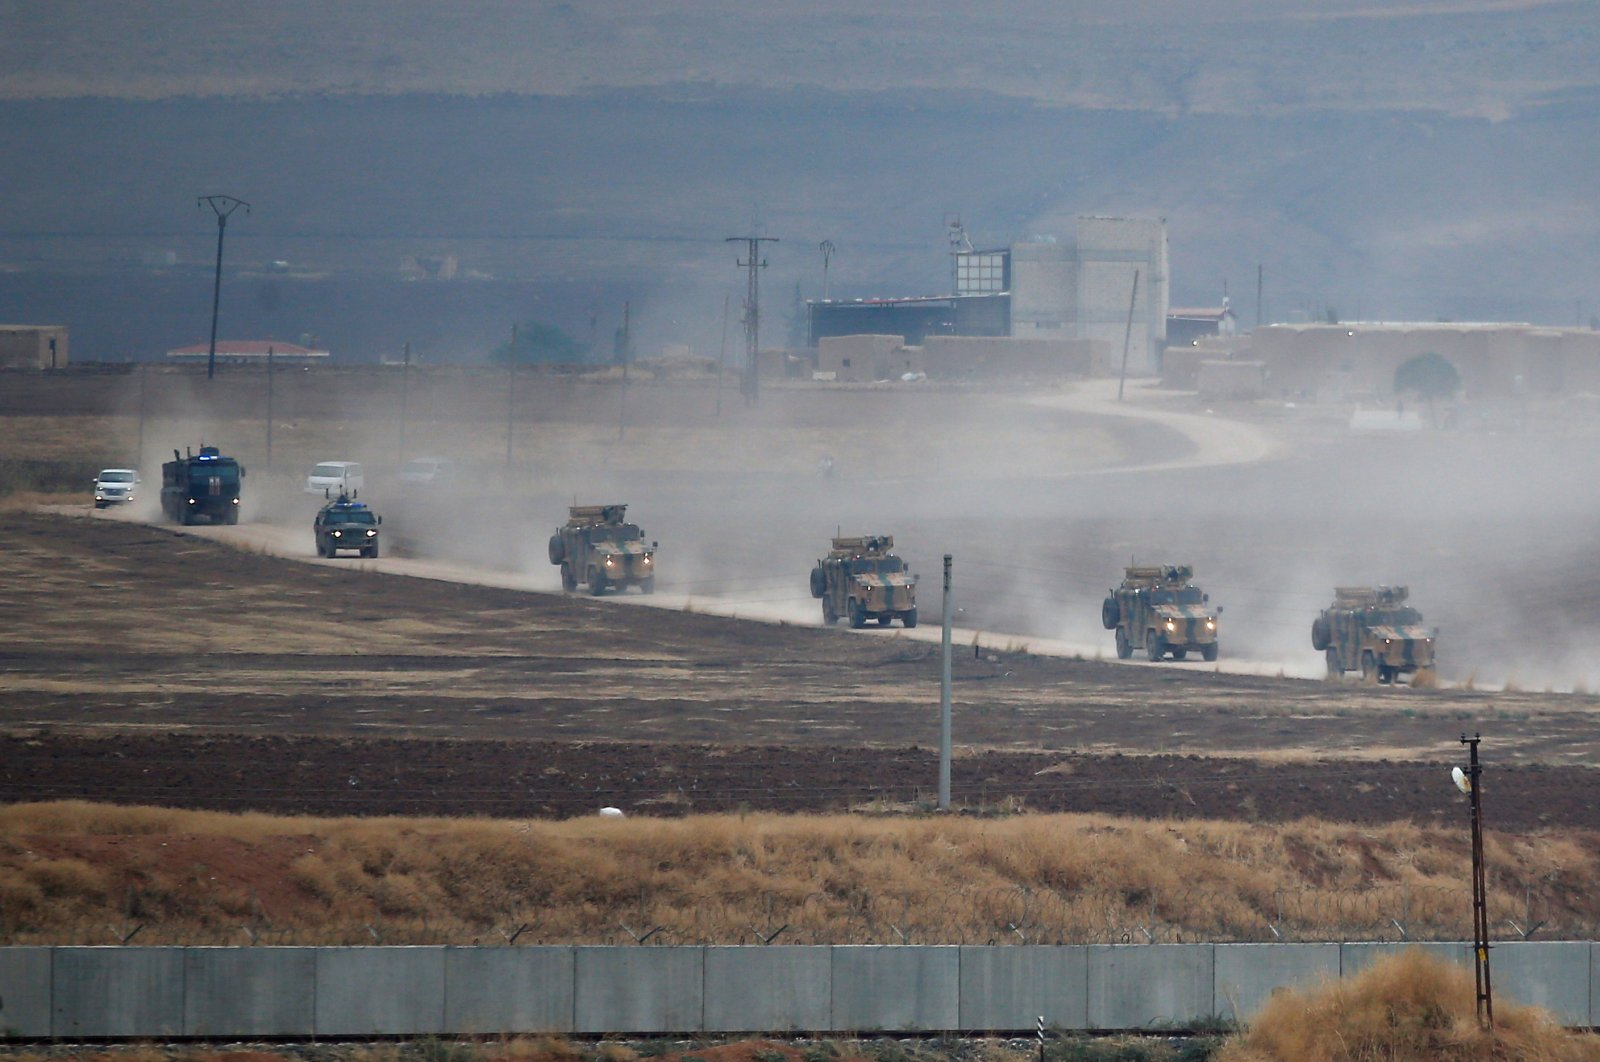 Turkish and Russian military vehicles near the Turkish border town of Kızıltepe in Mardin province return following a joint patrol in northeast Syria, Nov. 1, 2019. (Reuters Photo)